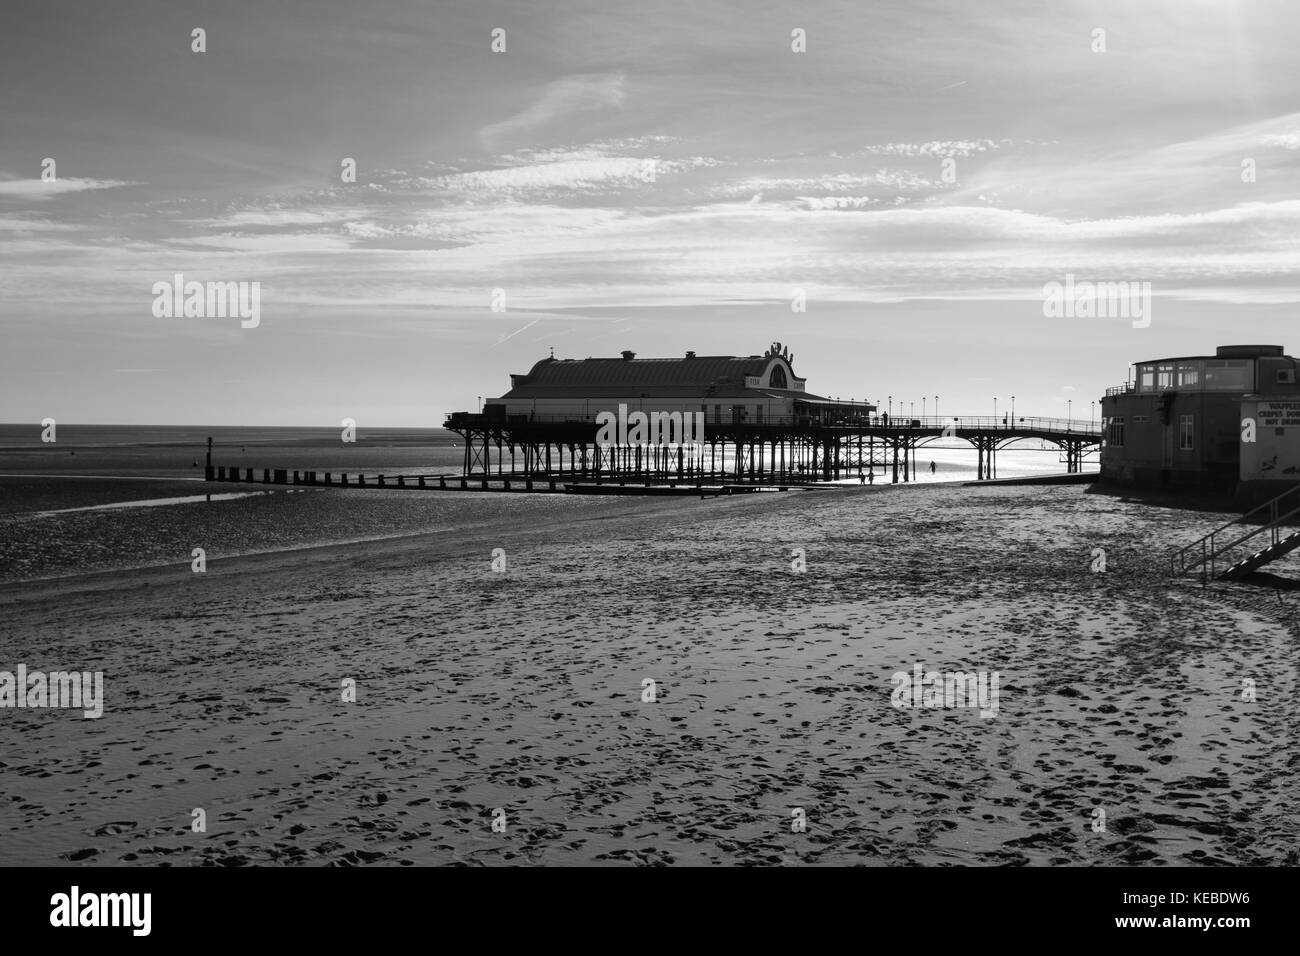 Cleethorpes Pier seen from a distance shot in black and white. - Stock Image